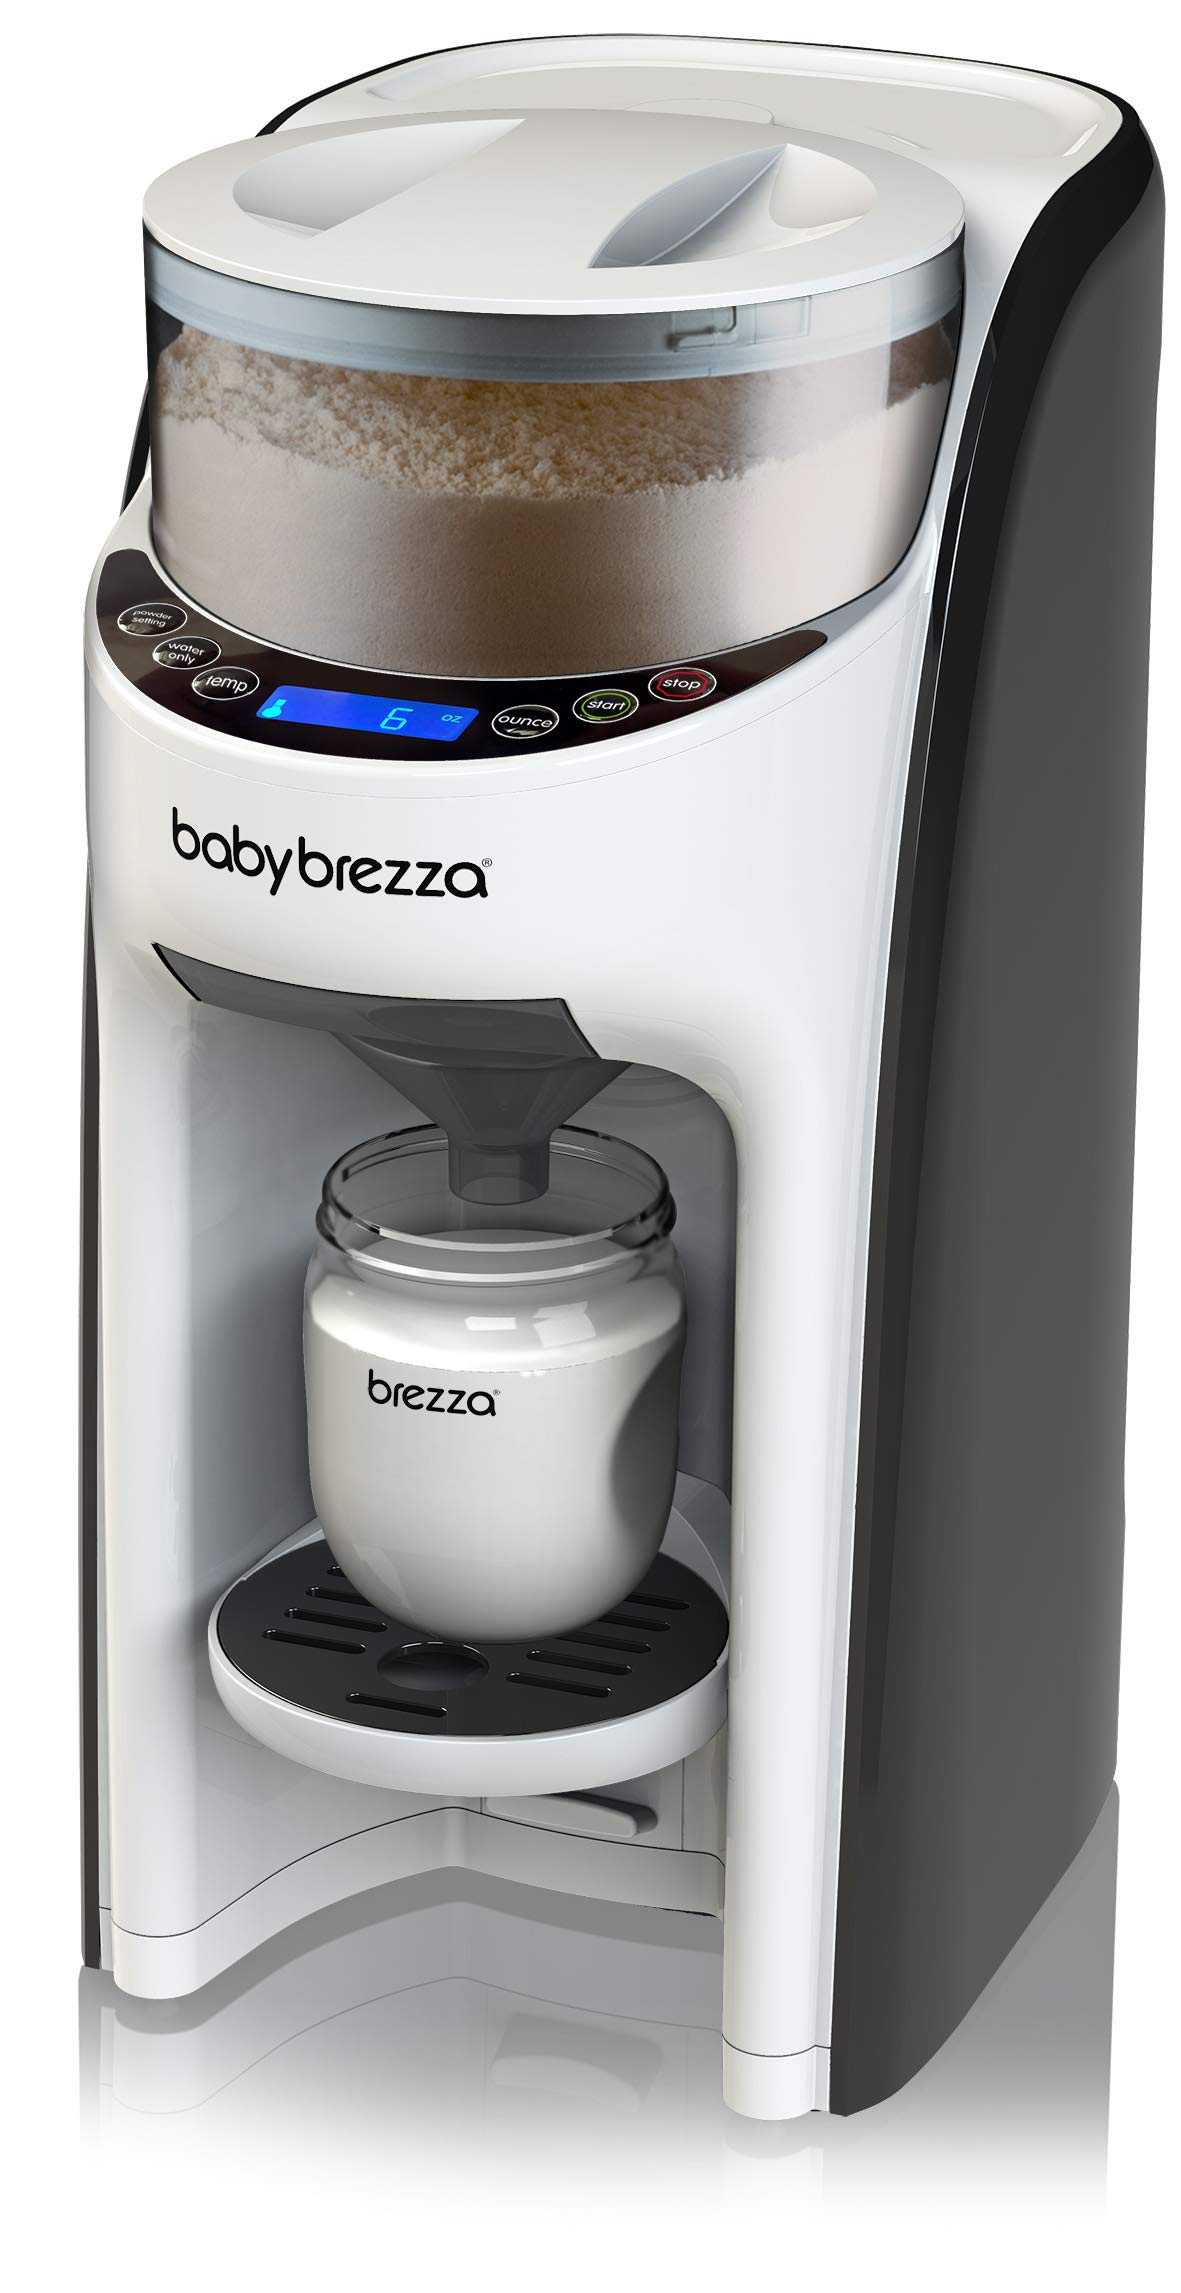 New and Improved Baby Brezza Formula Pro Advanced Formula Dispenser Machine - Automatically Mix a Warm Formula Bottle Instantly - Easily Make Bottle with Automatic Powder Blending by Baby Brezza (Image #2)